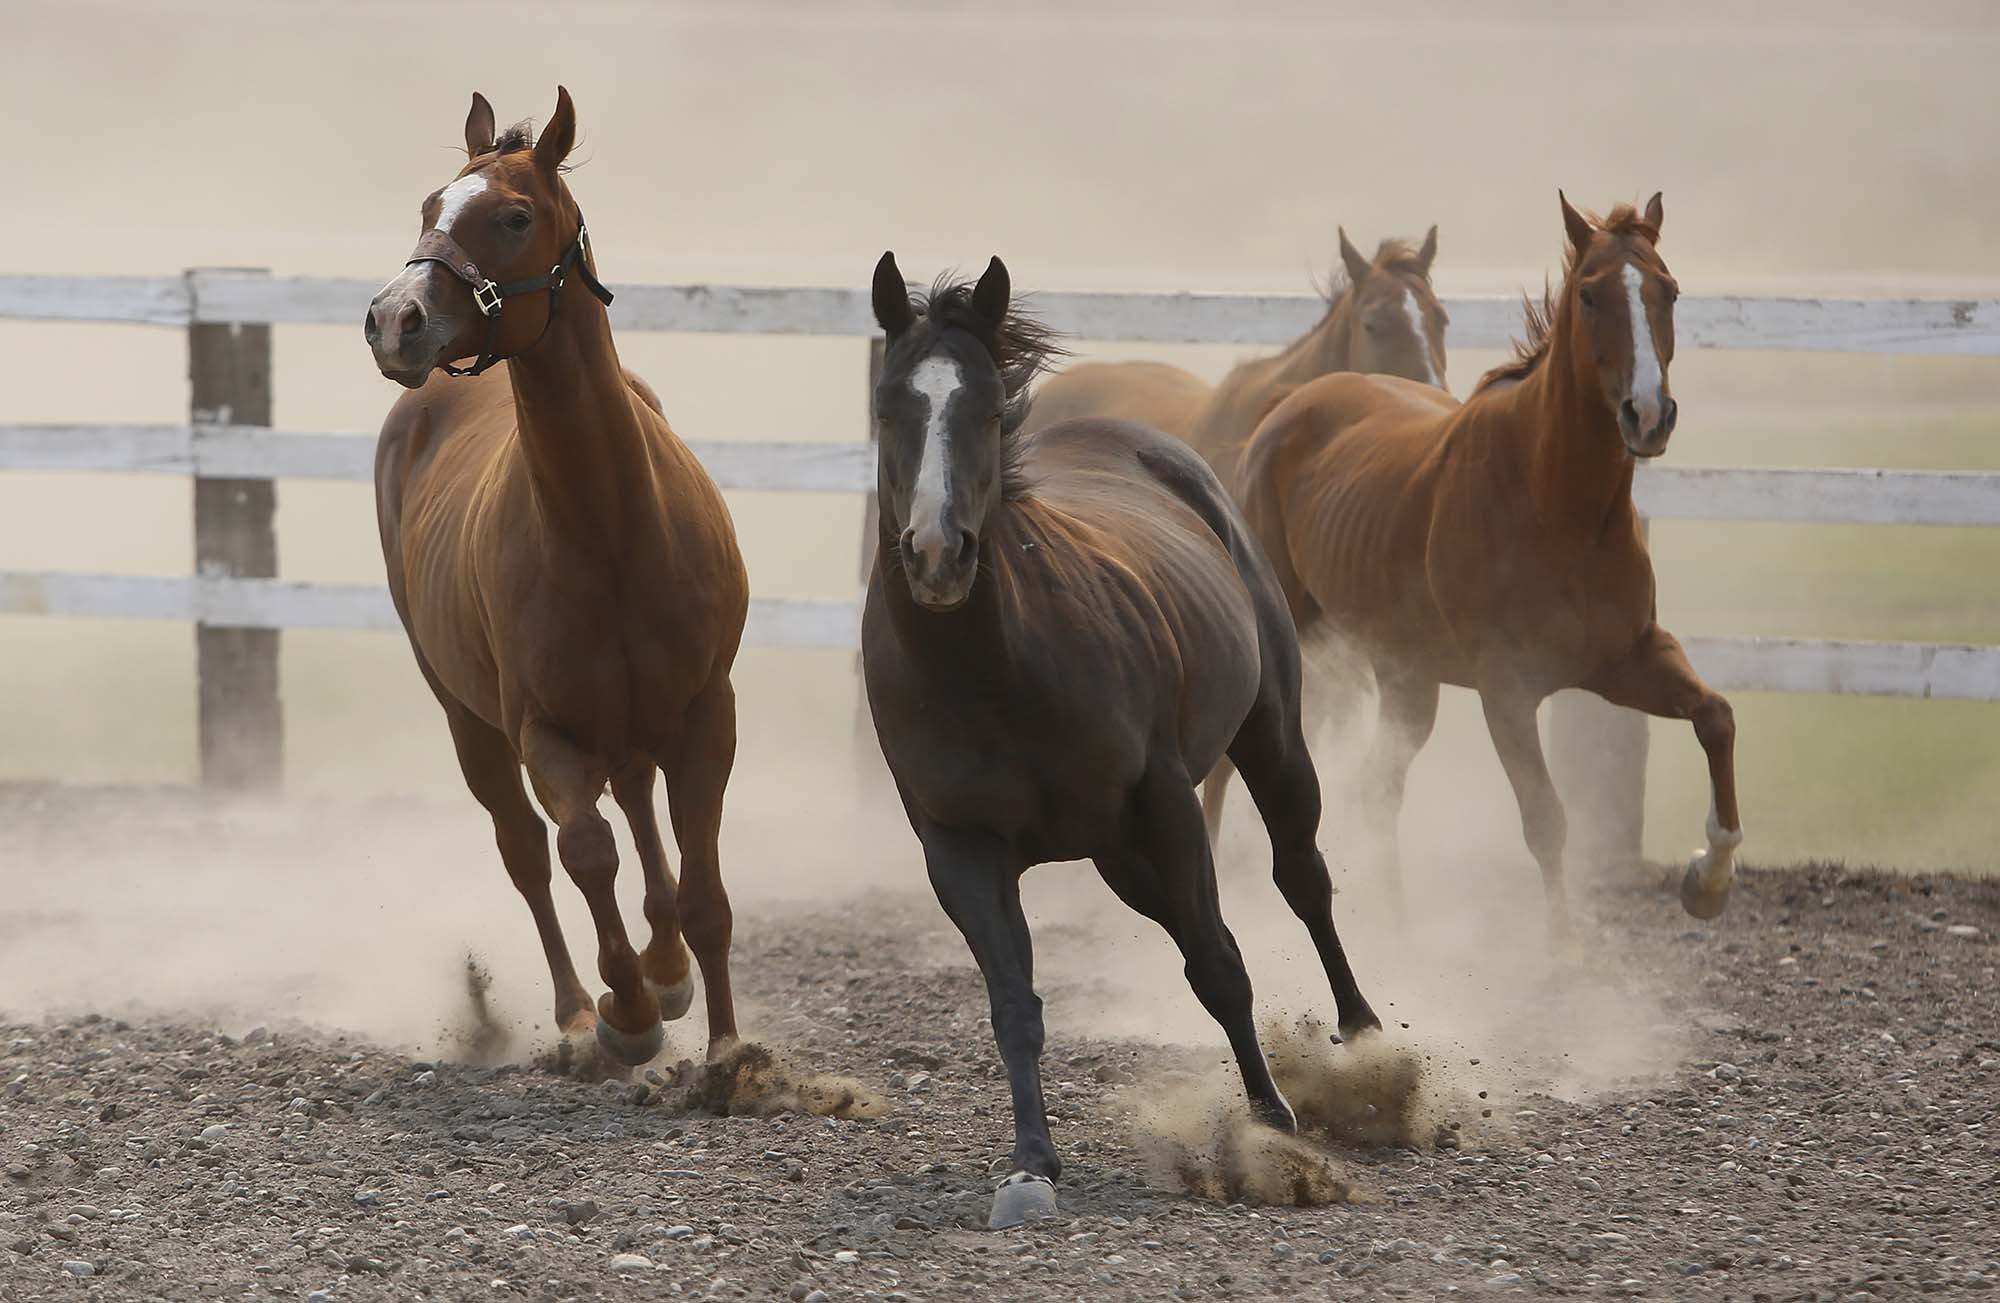 The Marchand family's horses get some exercise after spending three days in a pen after having been moved to the Okanogan County Fair Grounds last Wednesday because of wildfire danger in Okanogan, Wash., Friday, Aug. 21, 2015.